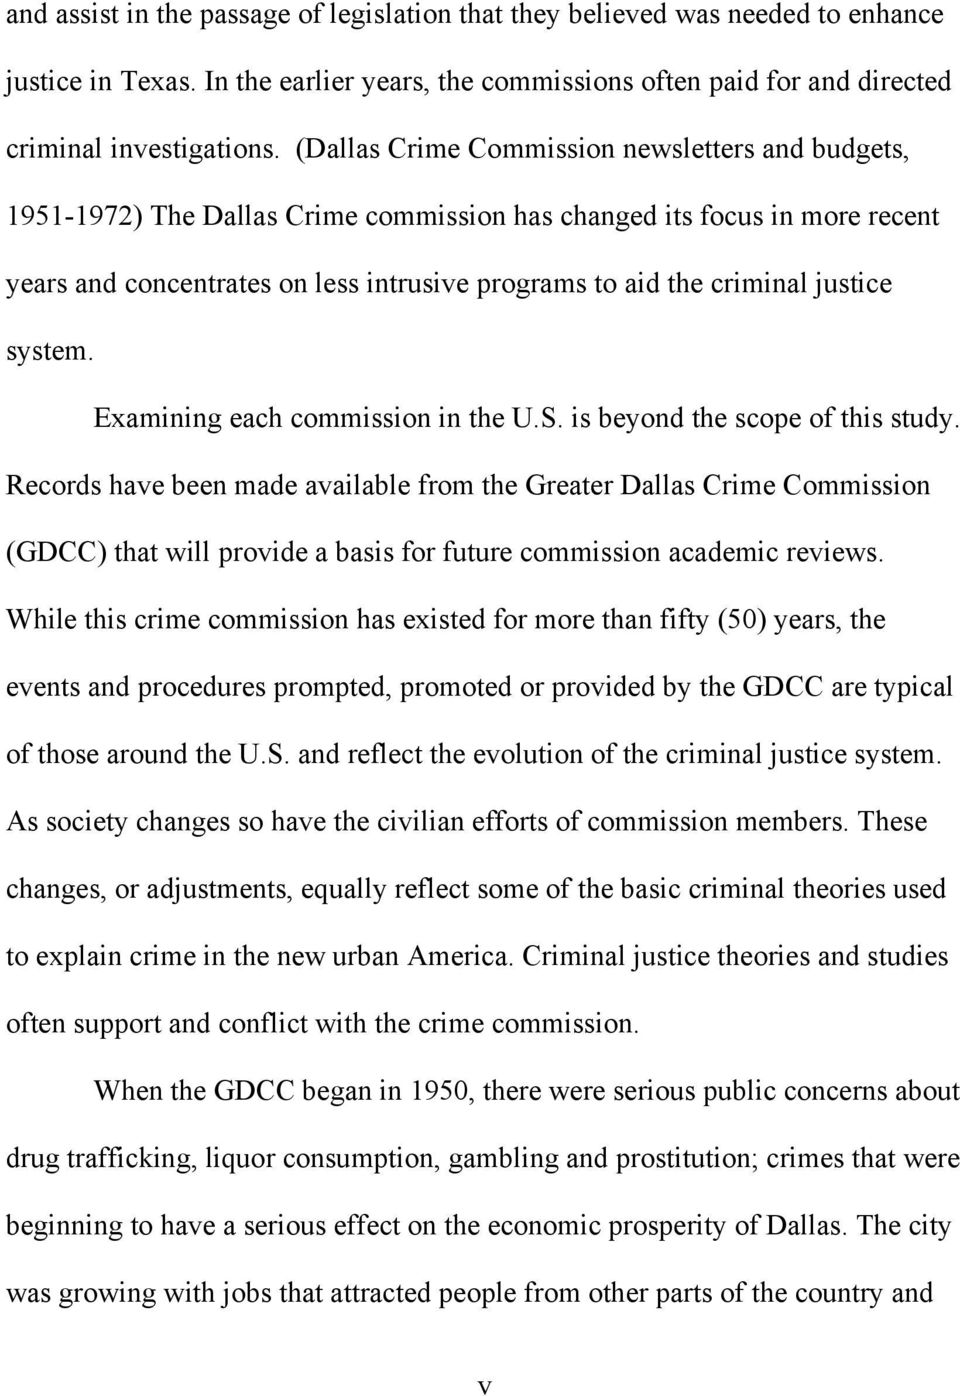 justice system. Examining each commission in the U.S. is beyond the scope of this study.